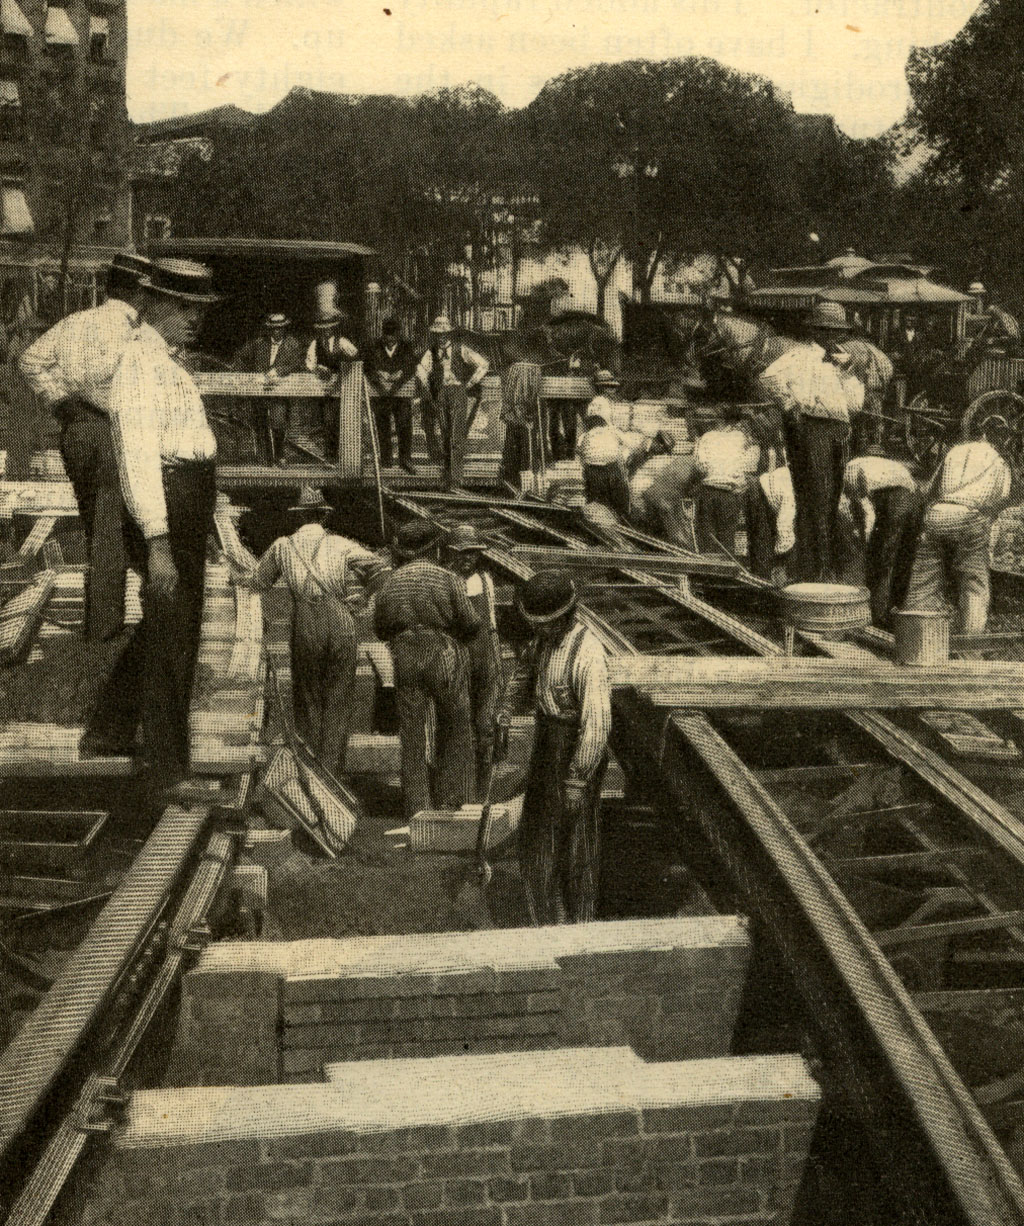 (481k, 1024x1226)<br><b>Country:</b> United States<br><b>City:</b> New York<br><b>System:</b> New York City Transit<br><b>Photo by:</b> Munsey's Magazine, 1902 <br><b>Notes:</b> Preliminary work in the circle at Eighth Avenue and Fifty-ninth Street, where the tracks of the electric surface line on upper Broadway were completed while the construction of the tunnel road was beginning.<br><b>Viewed (this week/total):</b> 2 / 4252